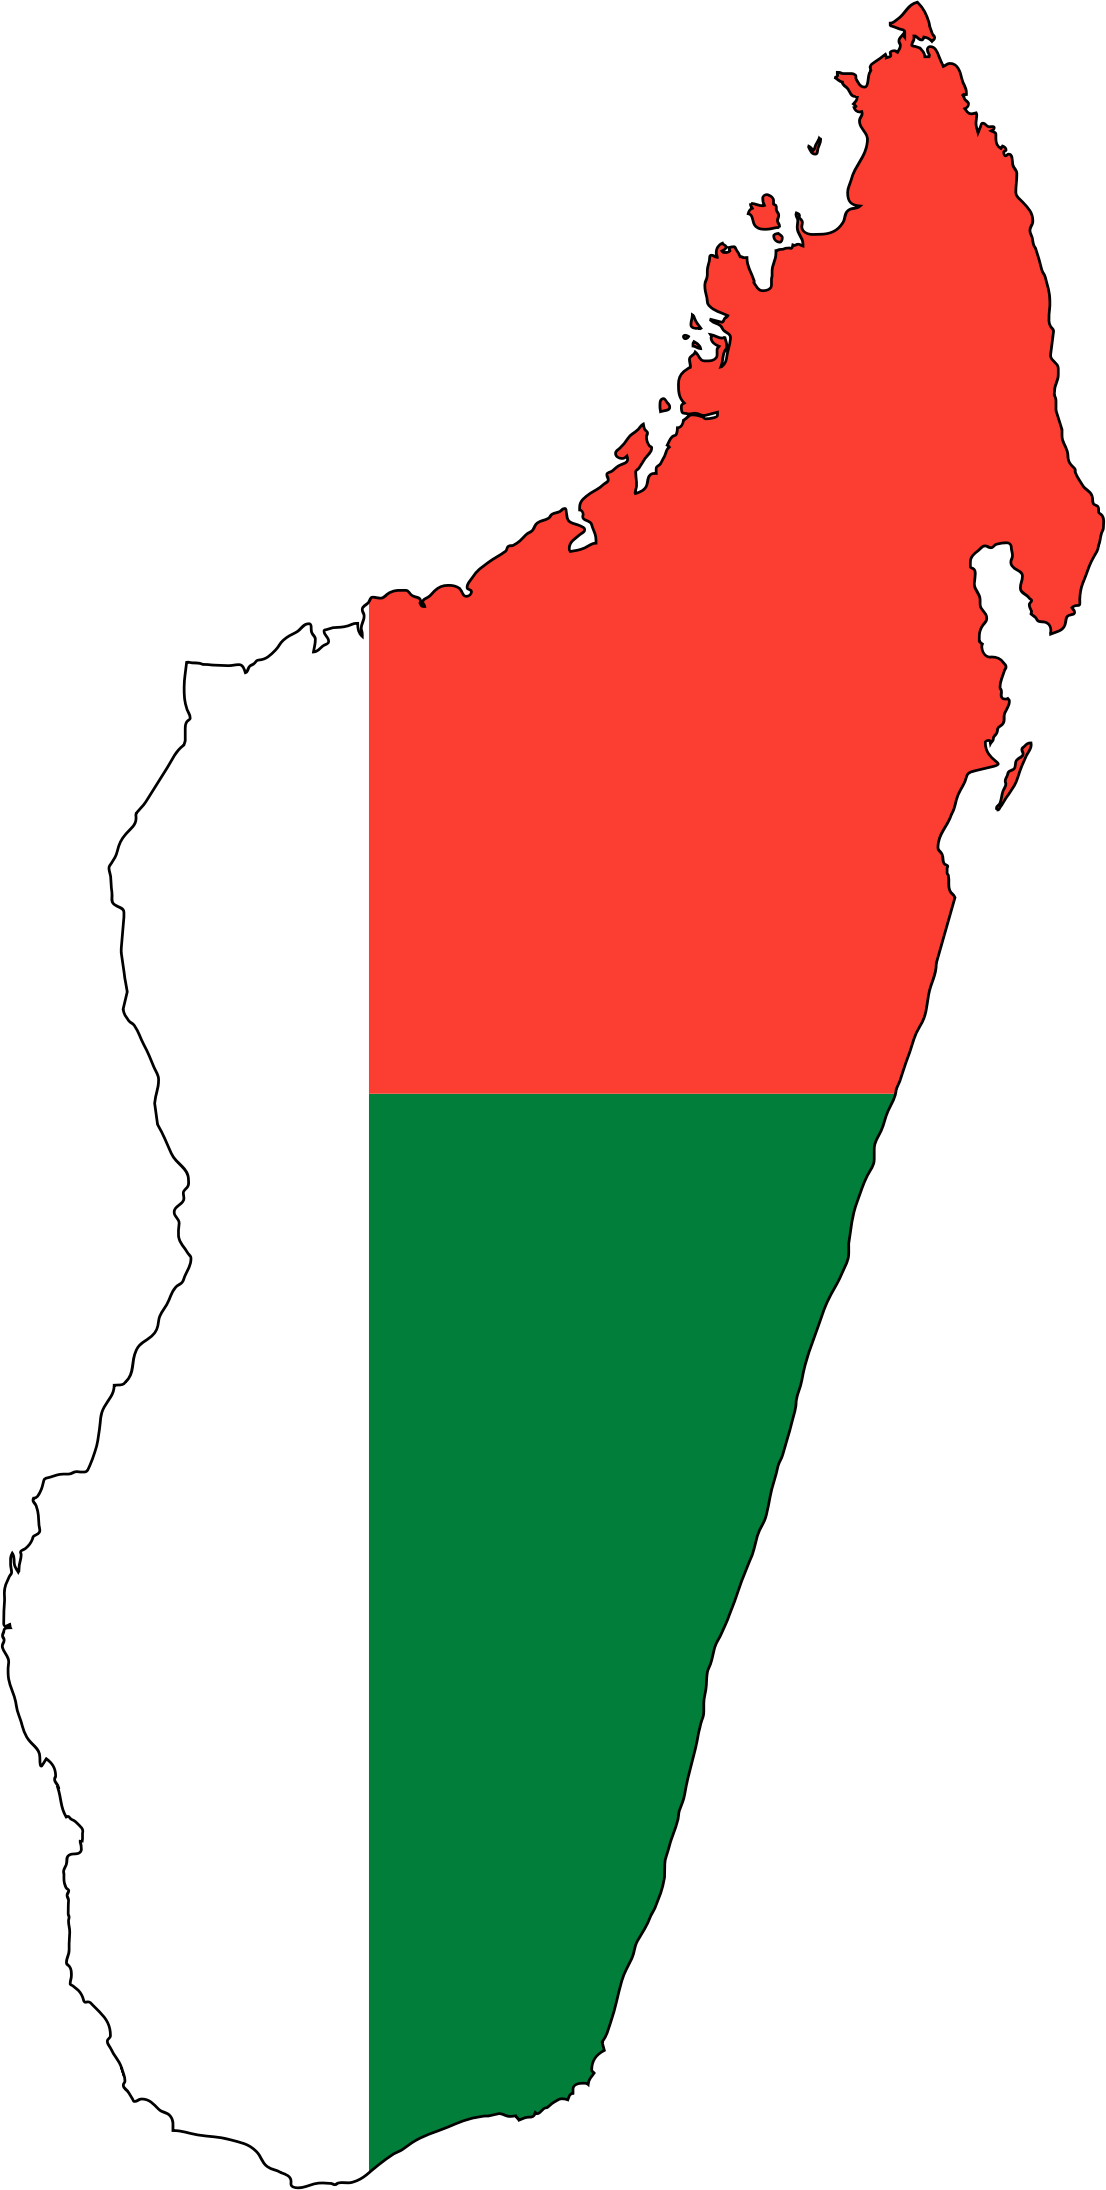 Clipart Madagascar Flag Map With Stroke - Madagascar map